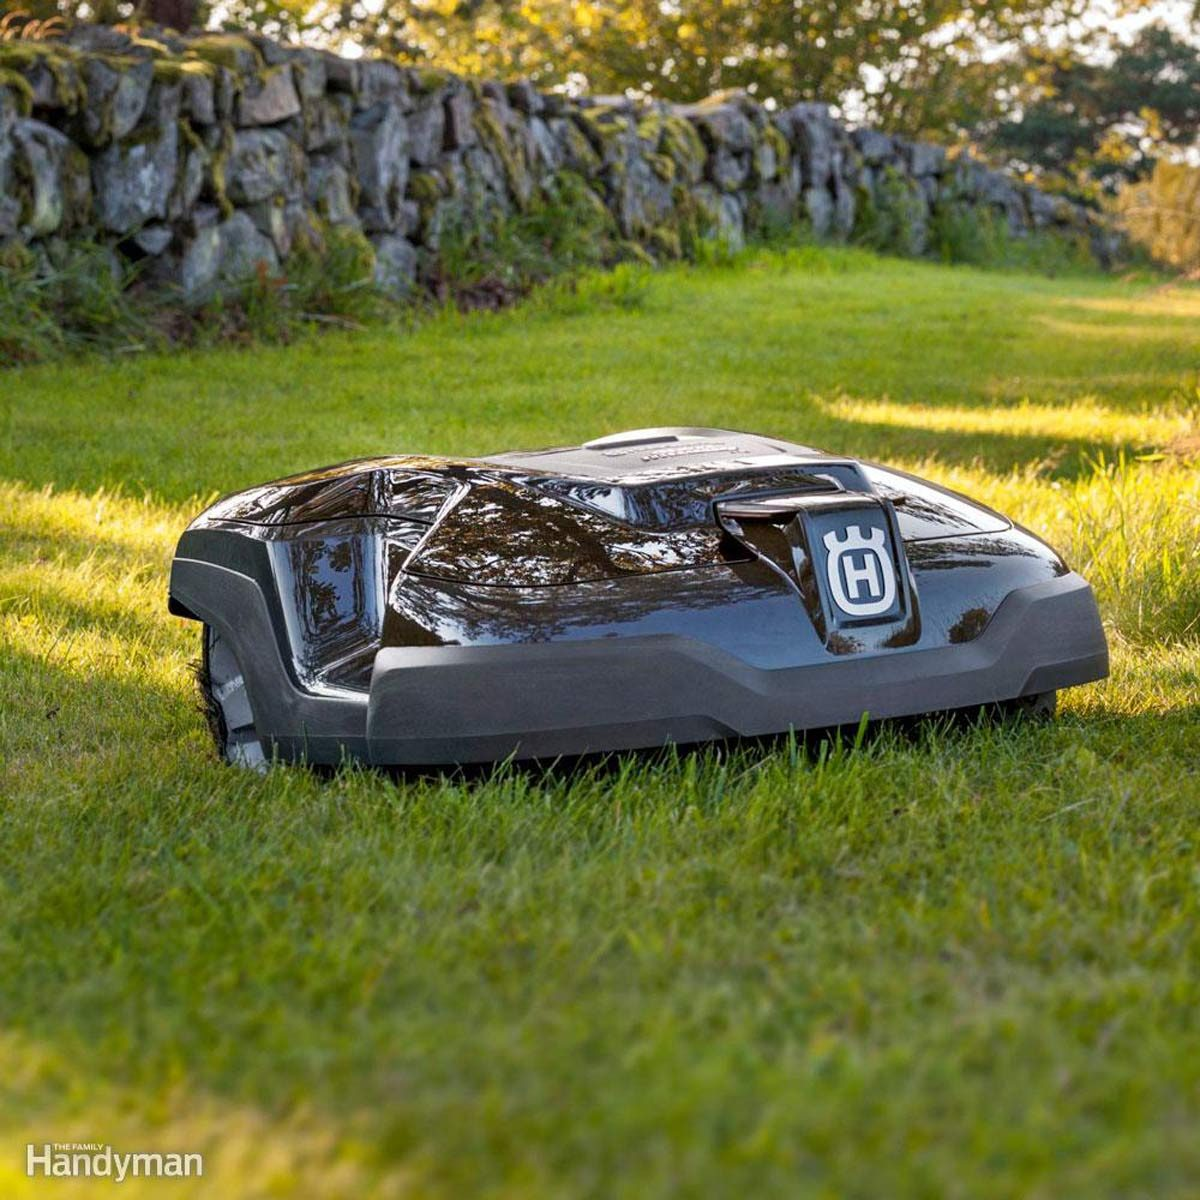 Robotic Lawn Mower: Automower